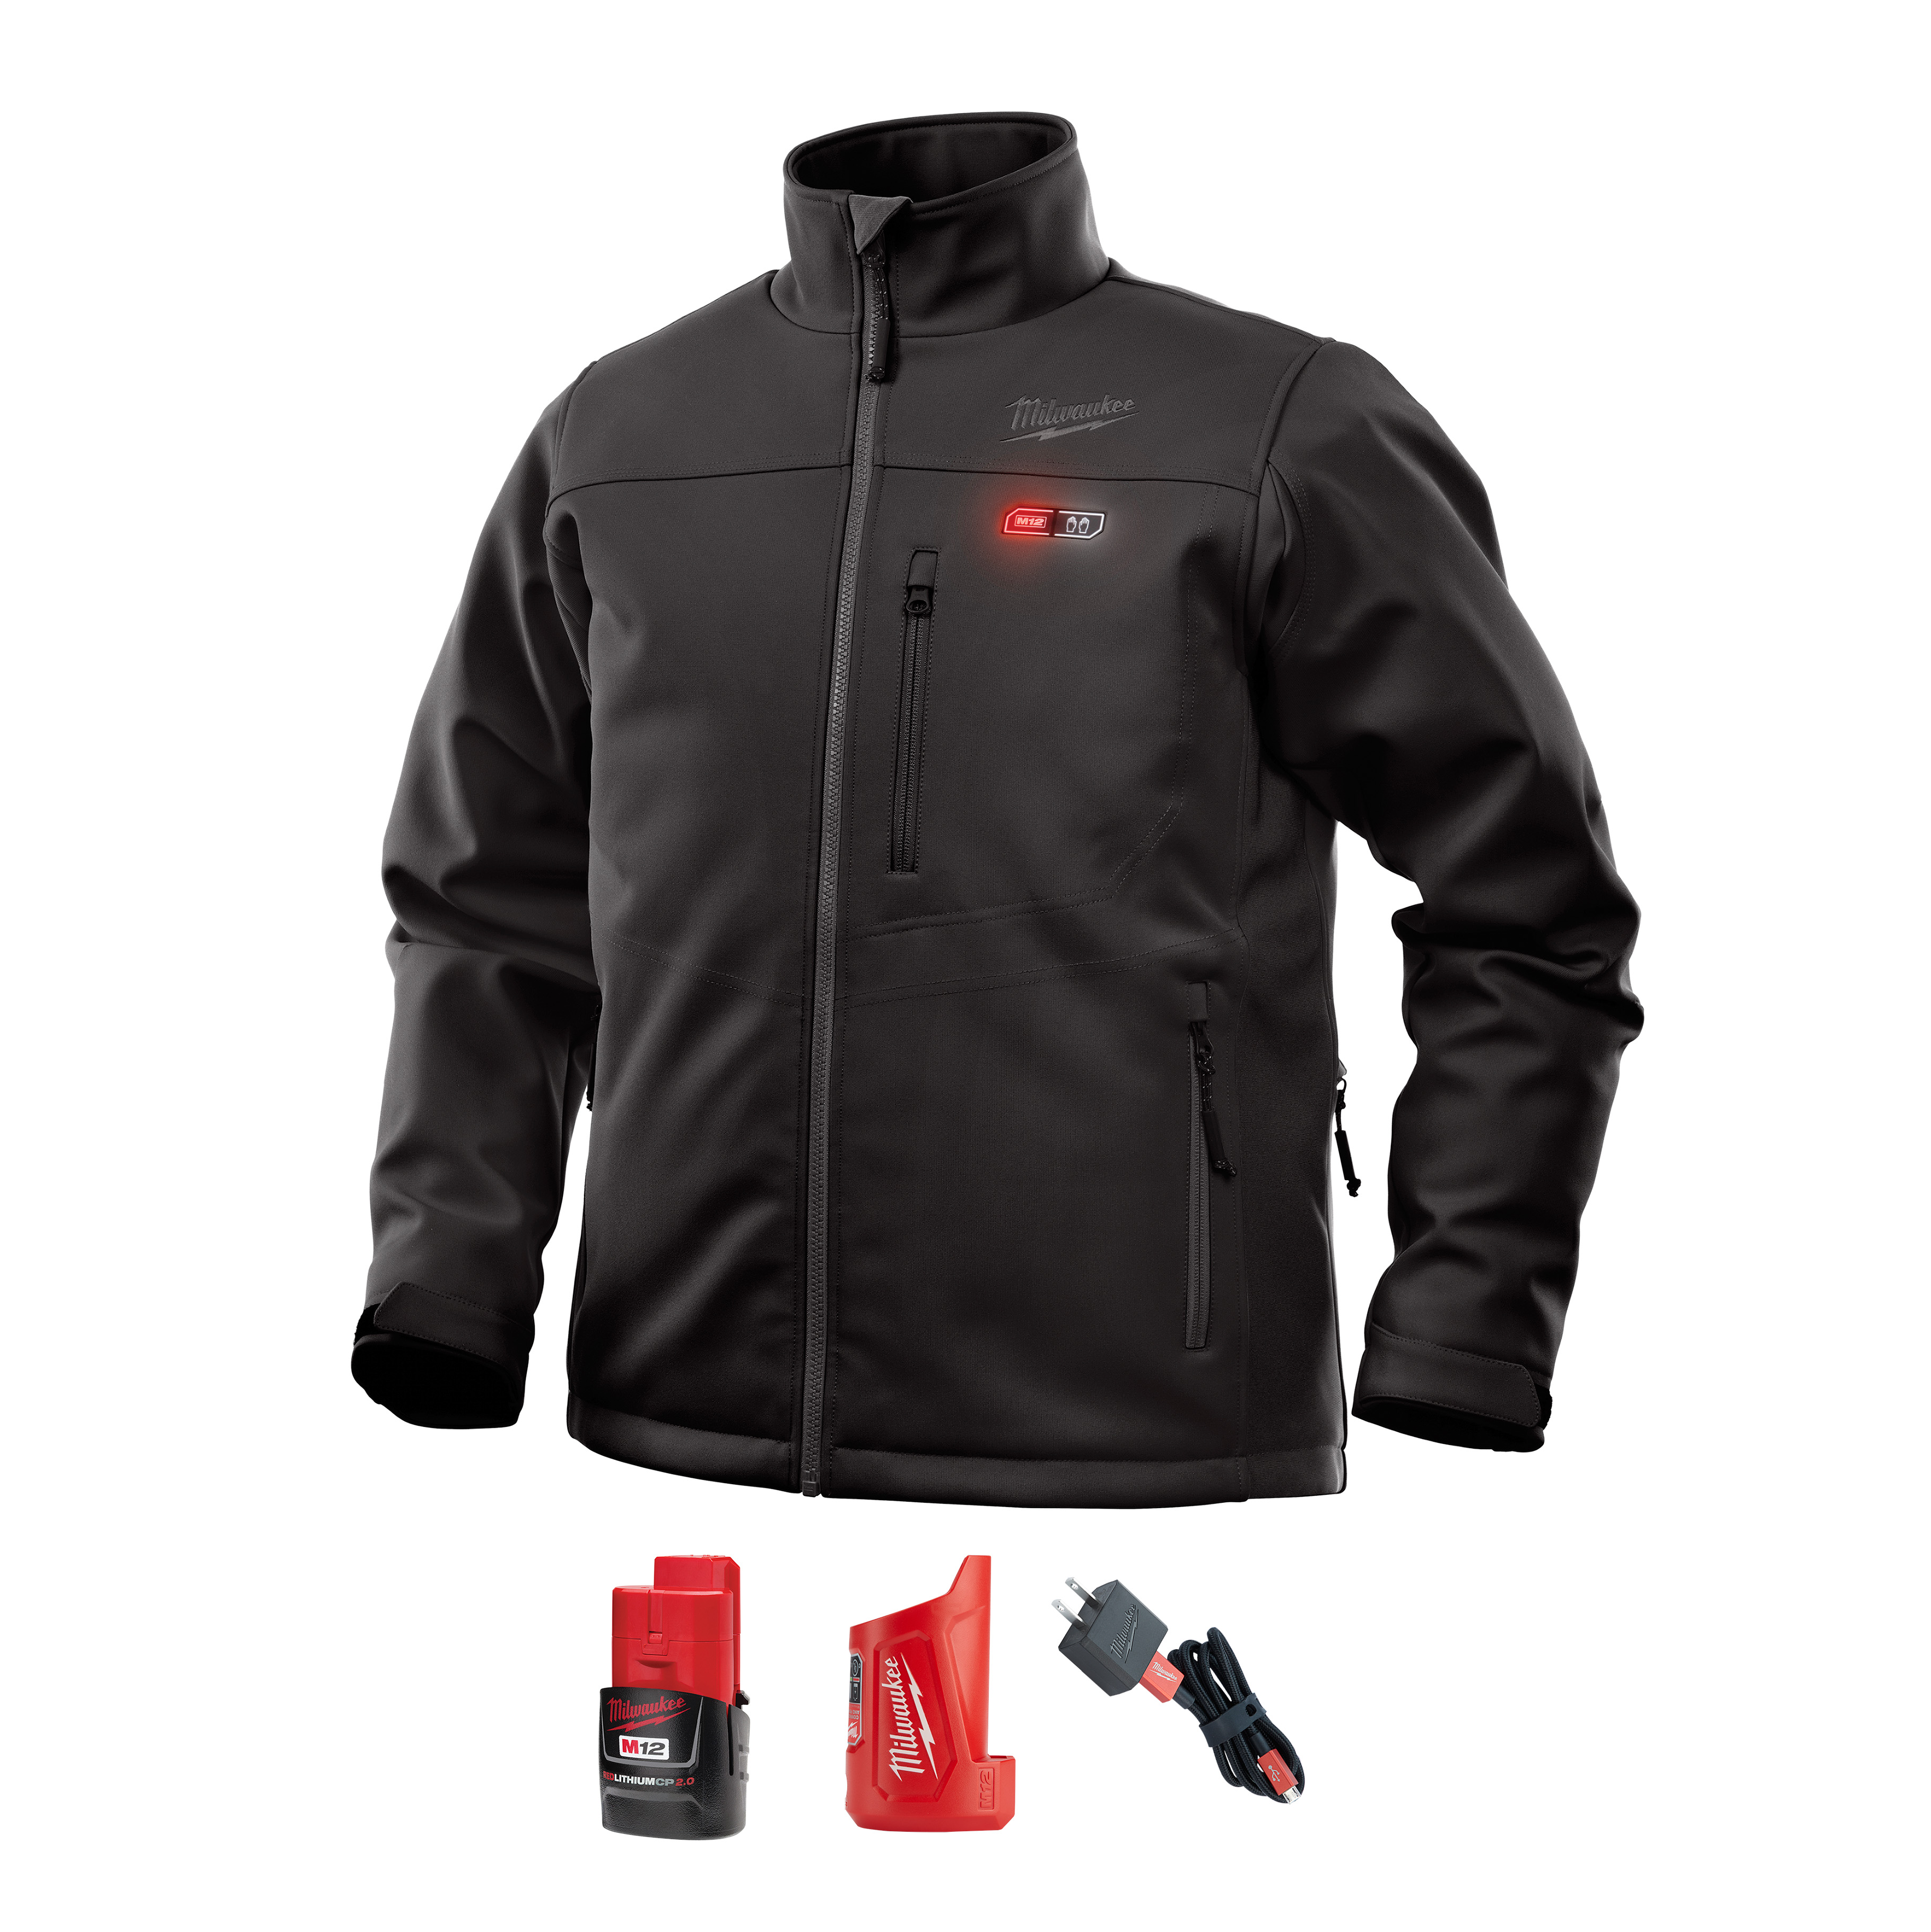 Milwaukee 202B-21S M12™ Heated ToughShell™ Jacket Kit, Black - Small